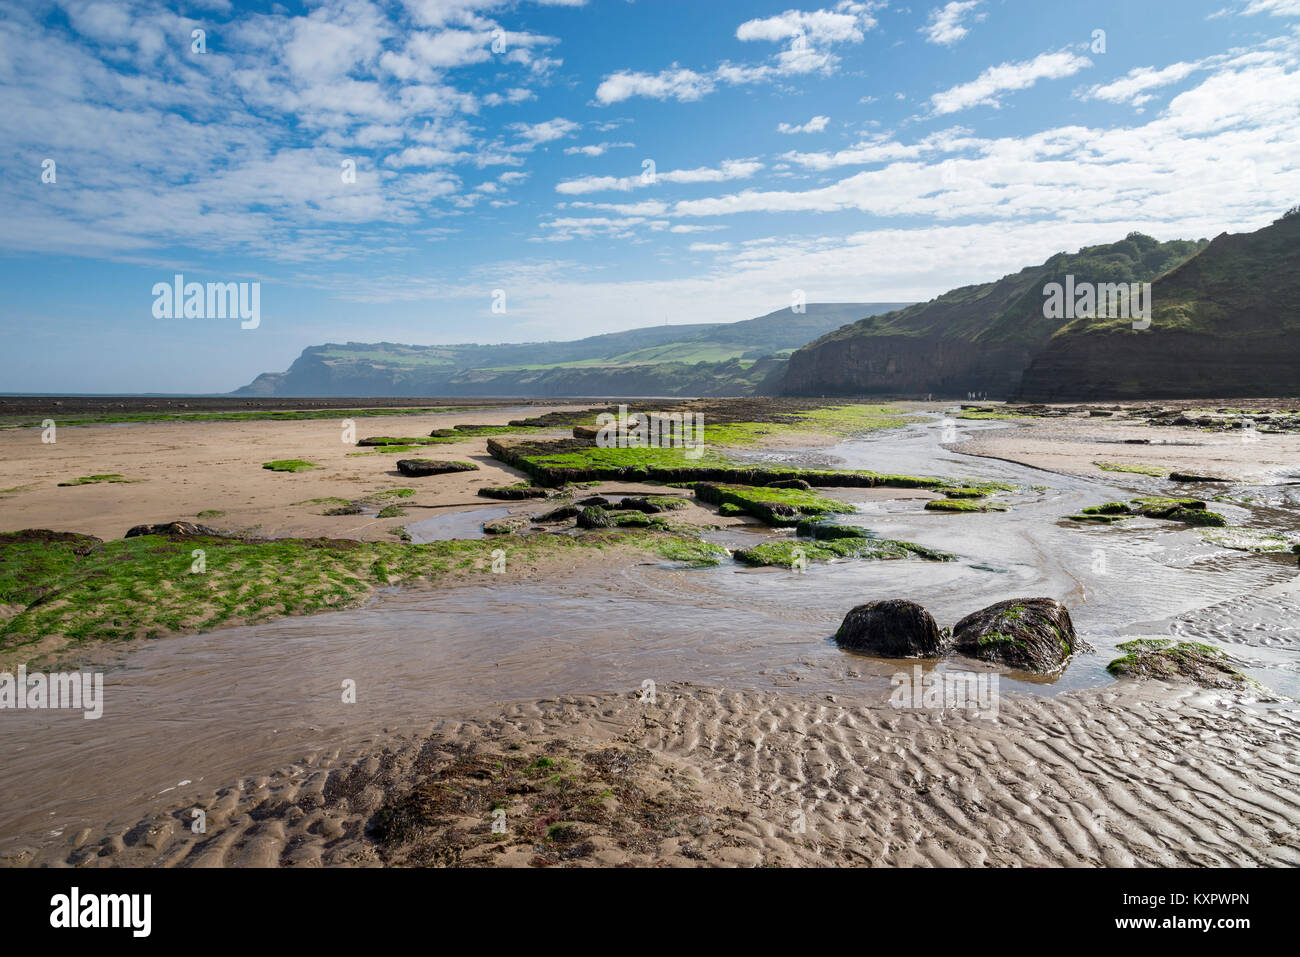 Beautiful beach and high cliffs at Robin Hood's Bay on the coast of North Yorkshire, England. View towards Ravenscar. - Stock Image